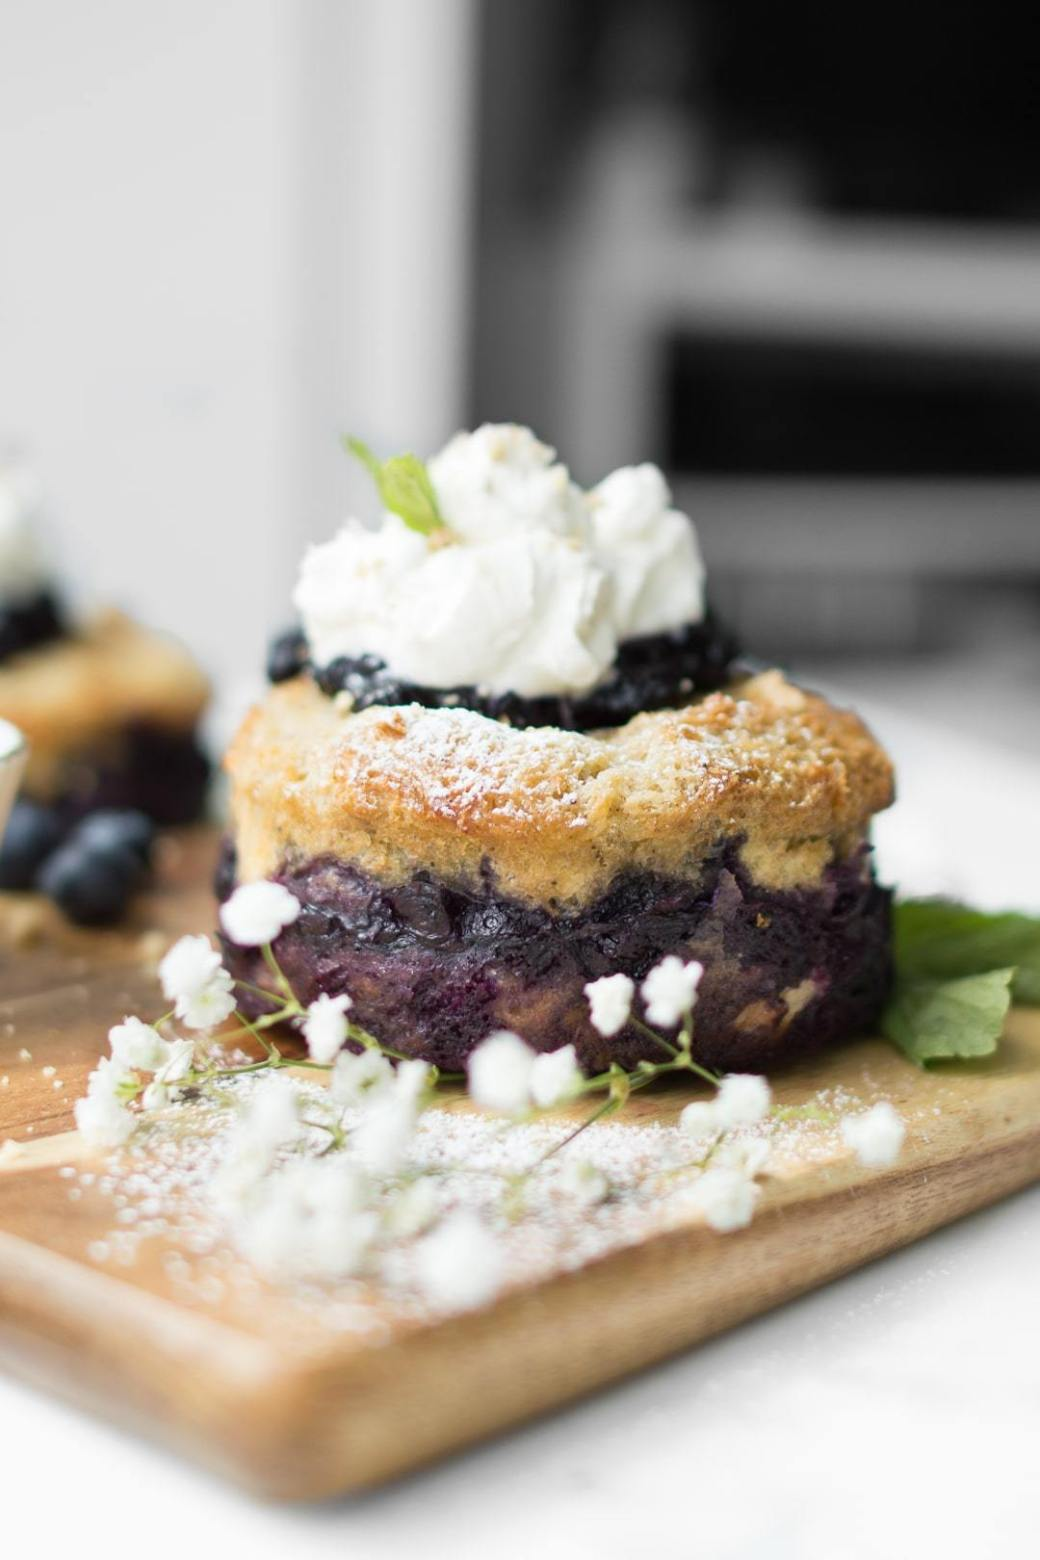 Baked Blueberry French Toast Cake by Chef Sous Chef